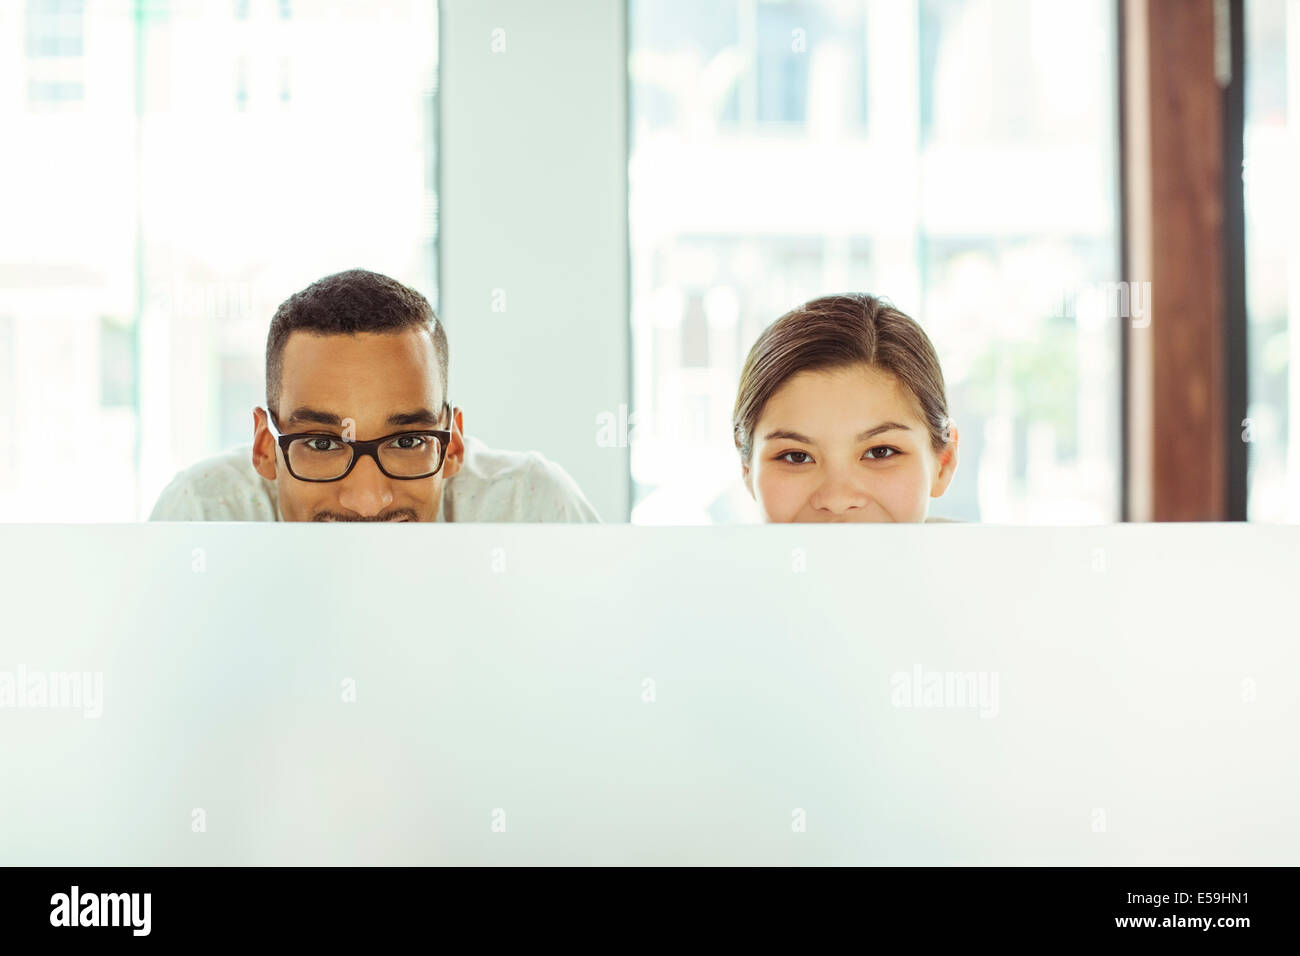 People peering over cubicle in office - Stock Image